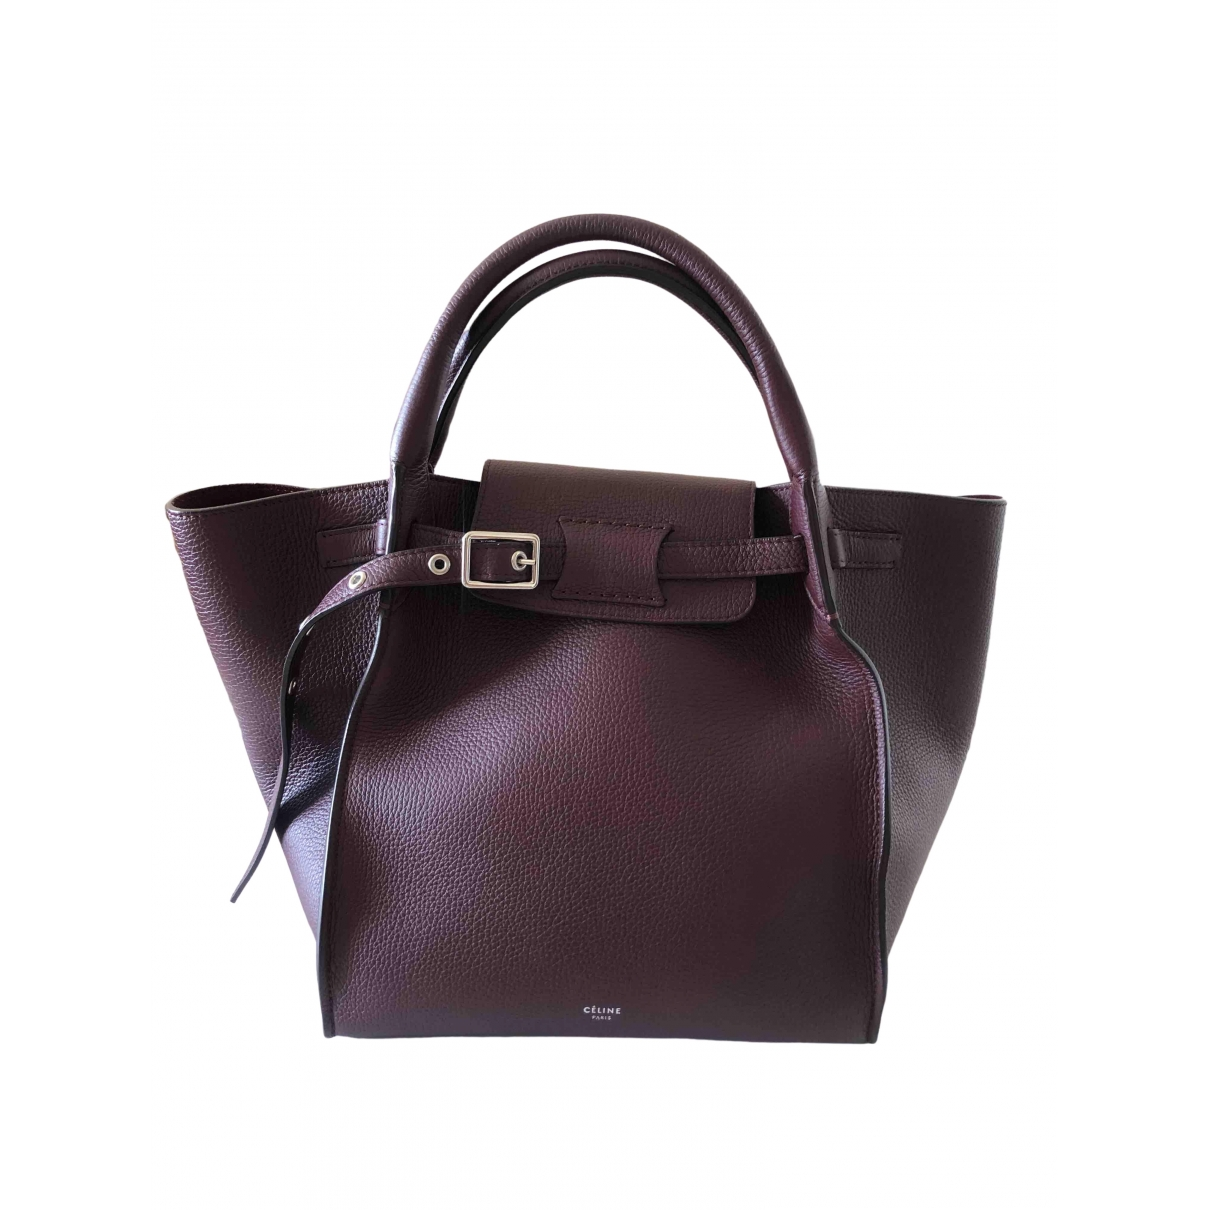 Celine Big Bag Burgundy Leather handbag for Women \N